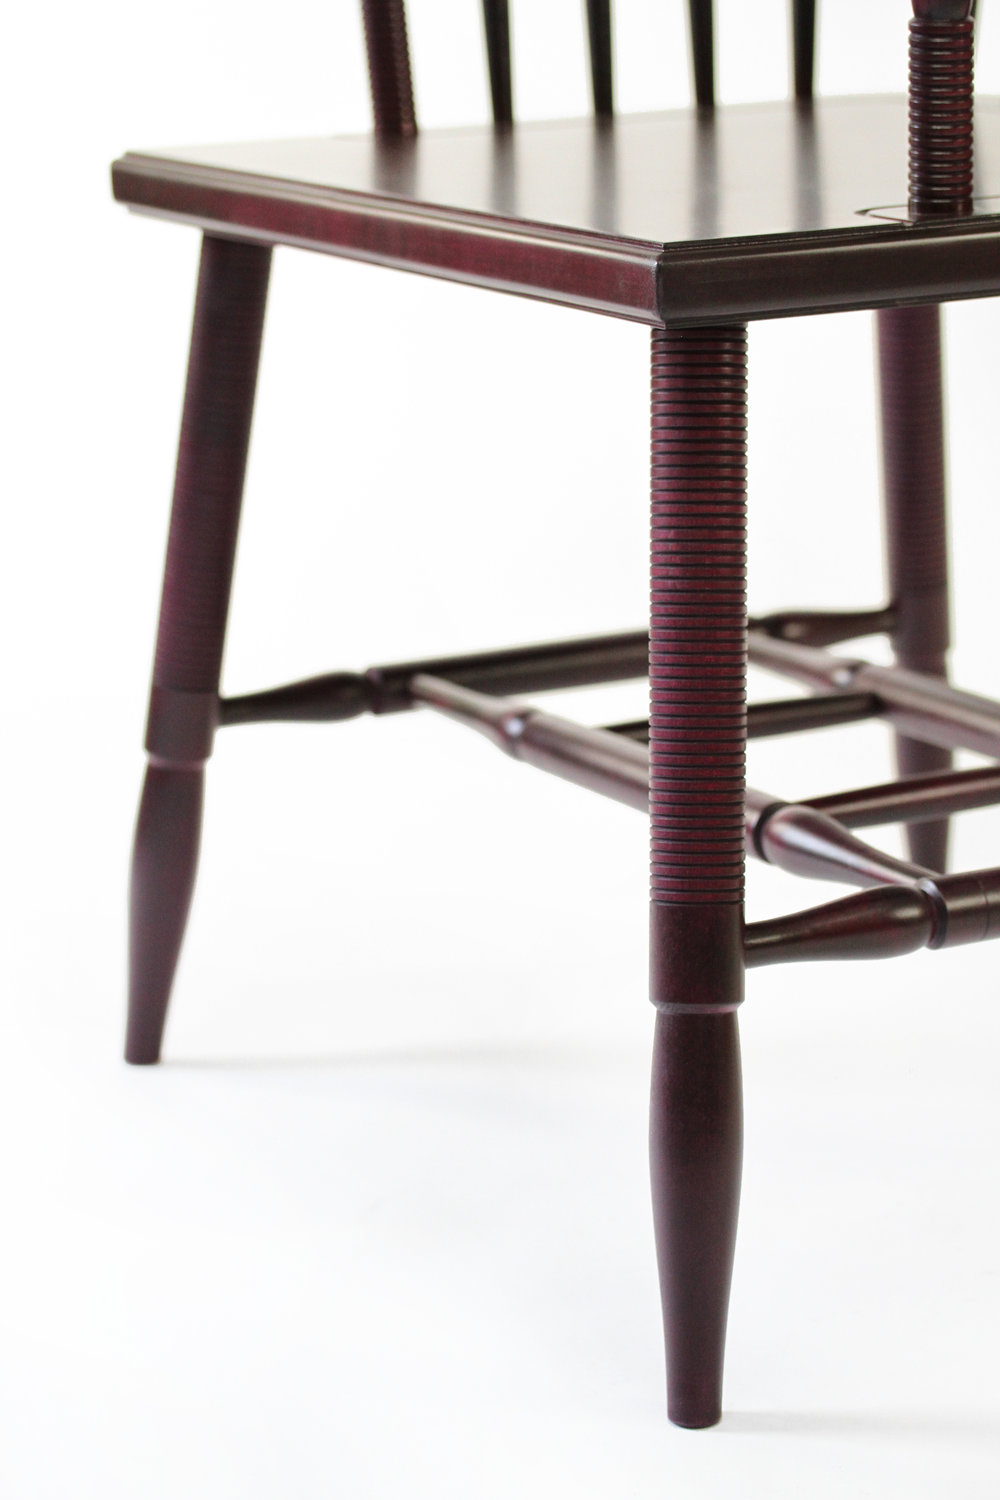 O&G Studio Horseshoe Chinese Armchair Windsor Contemporary Side Dining Chair  Modern Andrew Mau Designed Design Interior Braced Seating Ebonized Maple Magenta Beet Stained Stain